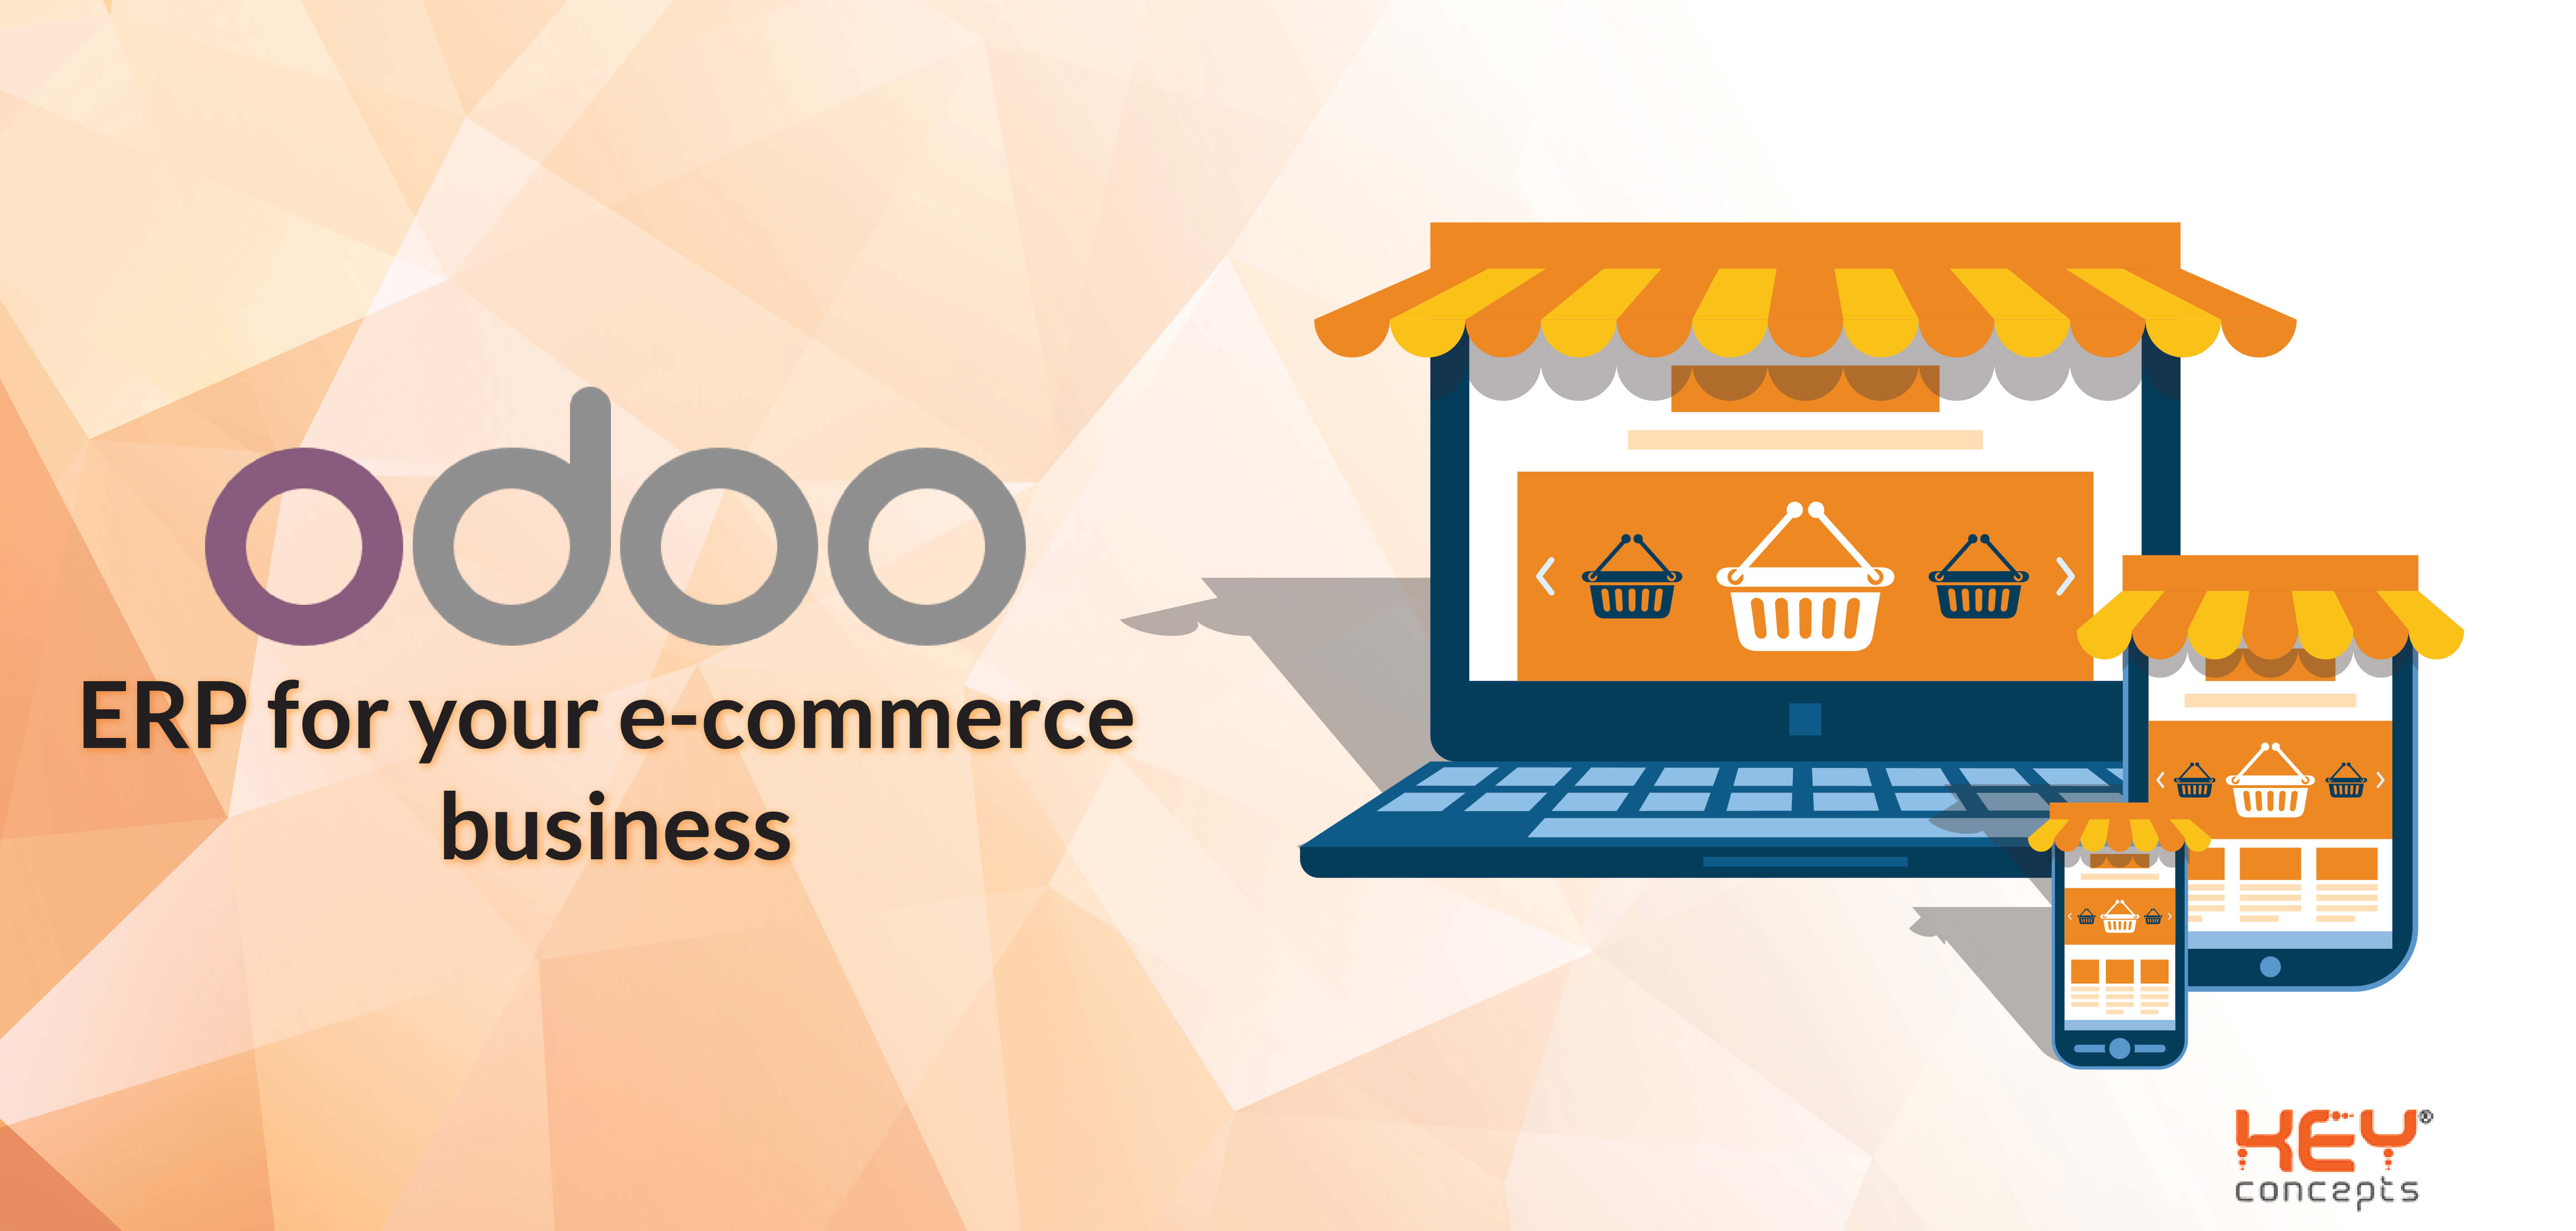 THE E-COMMERCE ENTREPRENEURS OF TODAY ARE CONSTANTLY KEEN TO DEVELOP A BUSINESS WHICH REQUIRES AN EXPONENTIAL GROWTH TO SUSTAIN IN THE COMPETITION.